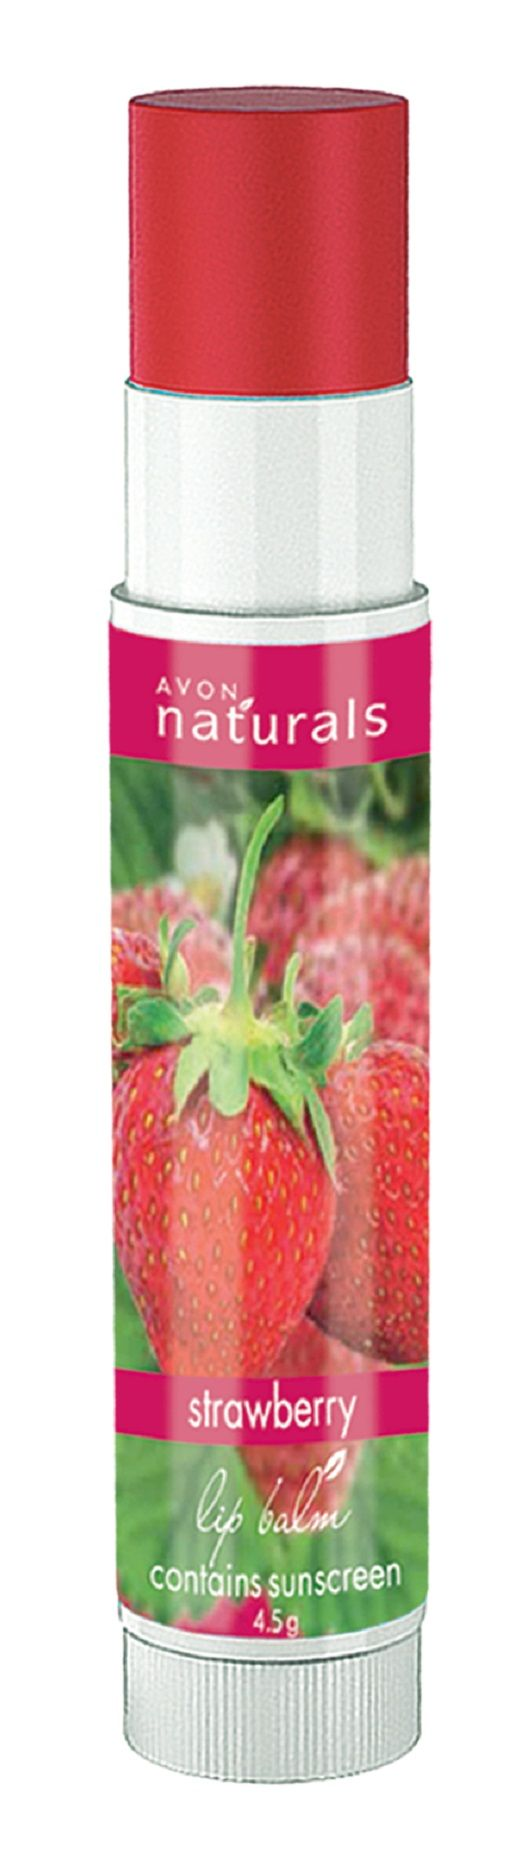 Avon Naturals Lip Balm 4.5 GM Strawberry